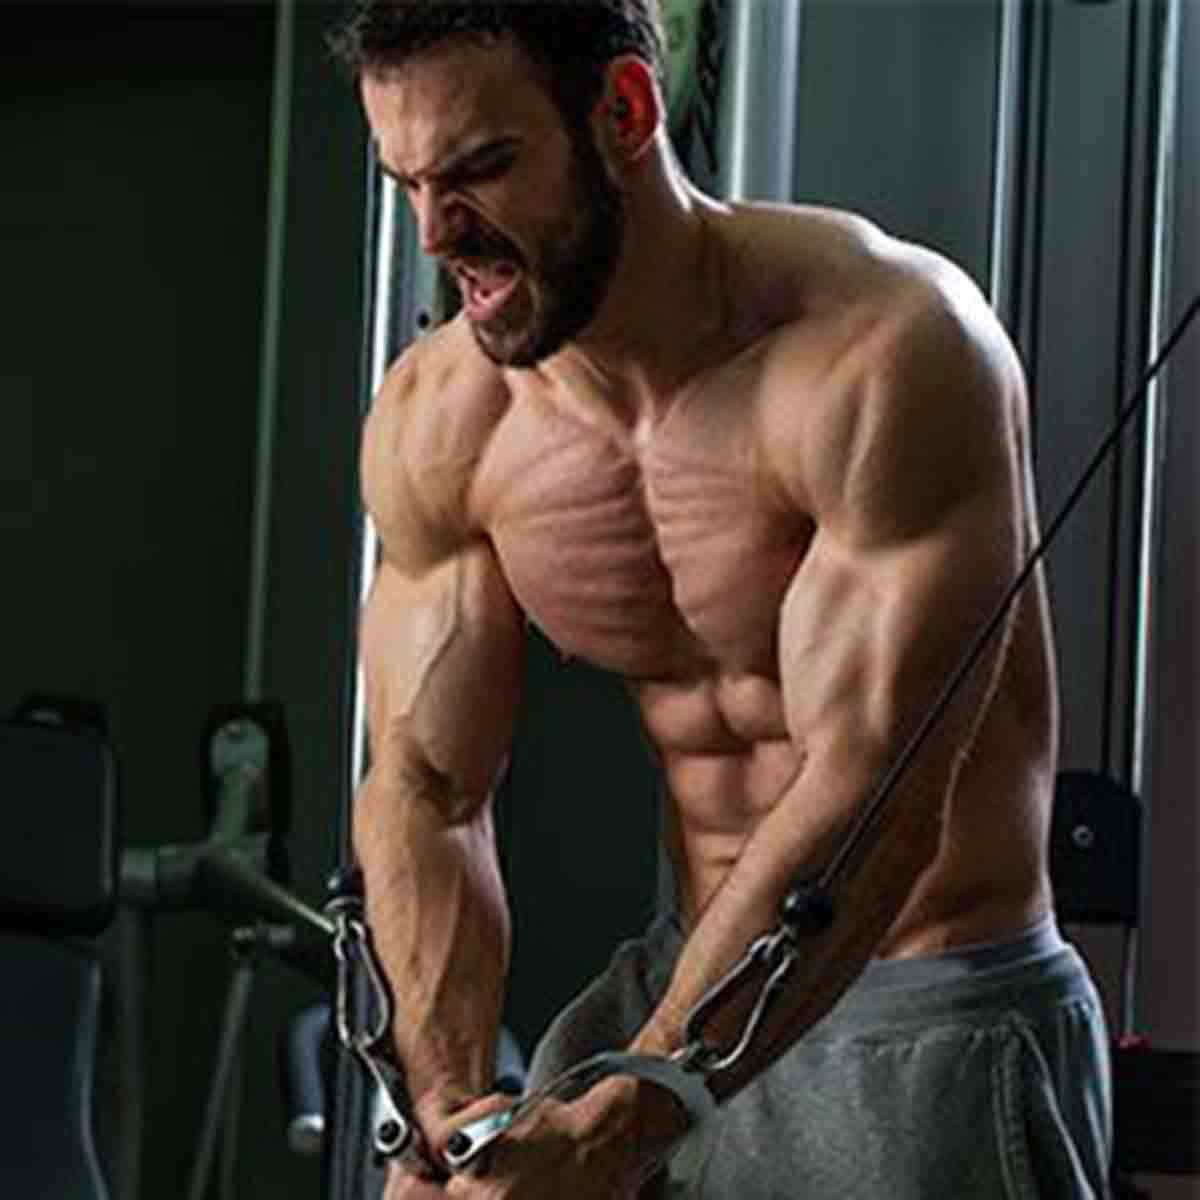 Scientifically Proven Ways To Build Muscle Quickly - Gym Workout